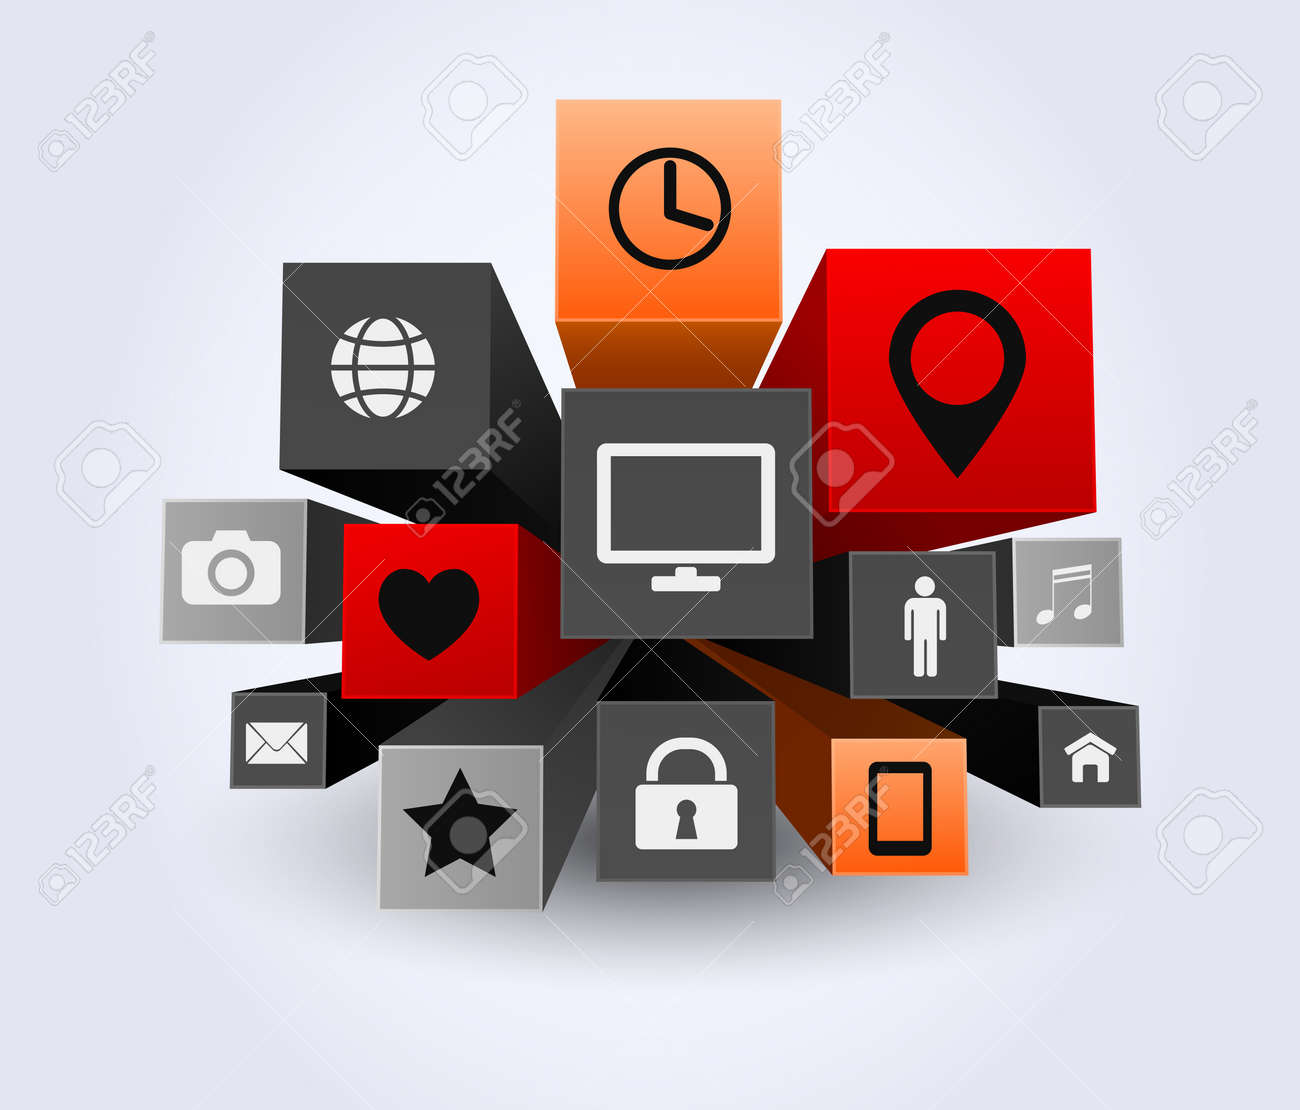 3d apps icon abstract background royalty free cliparts, vectors, and